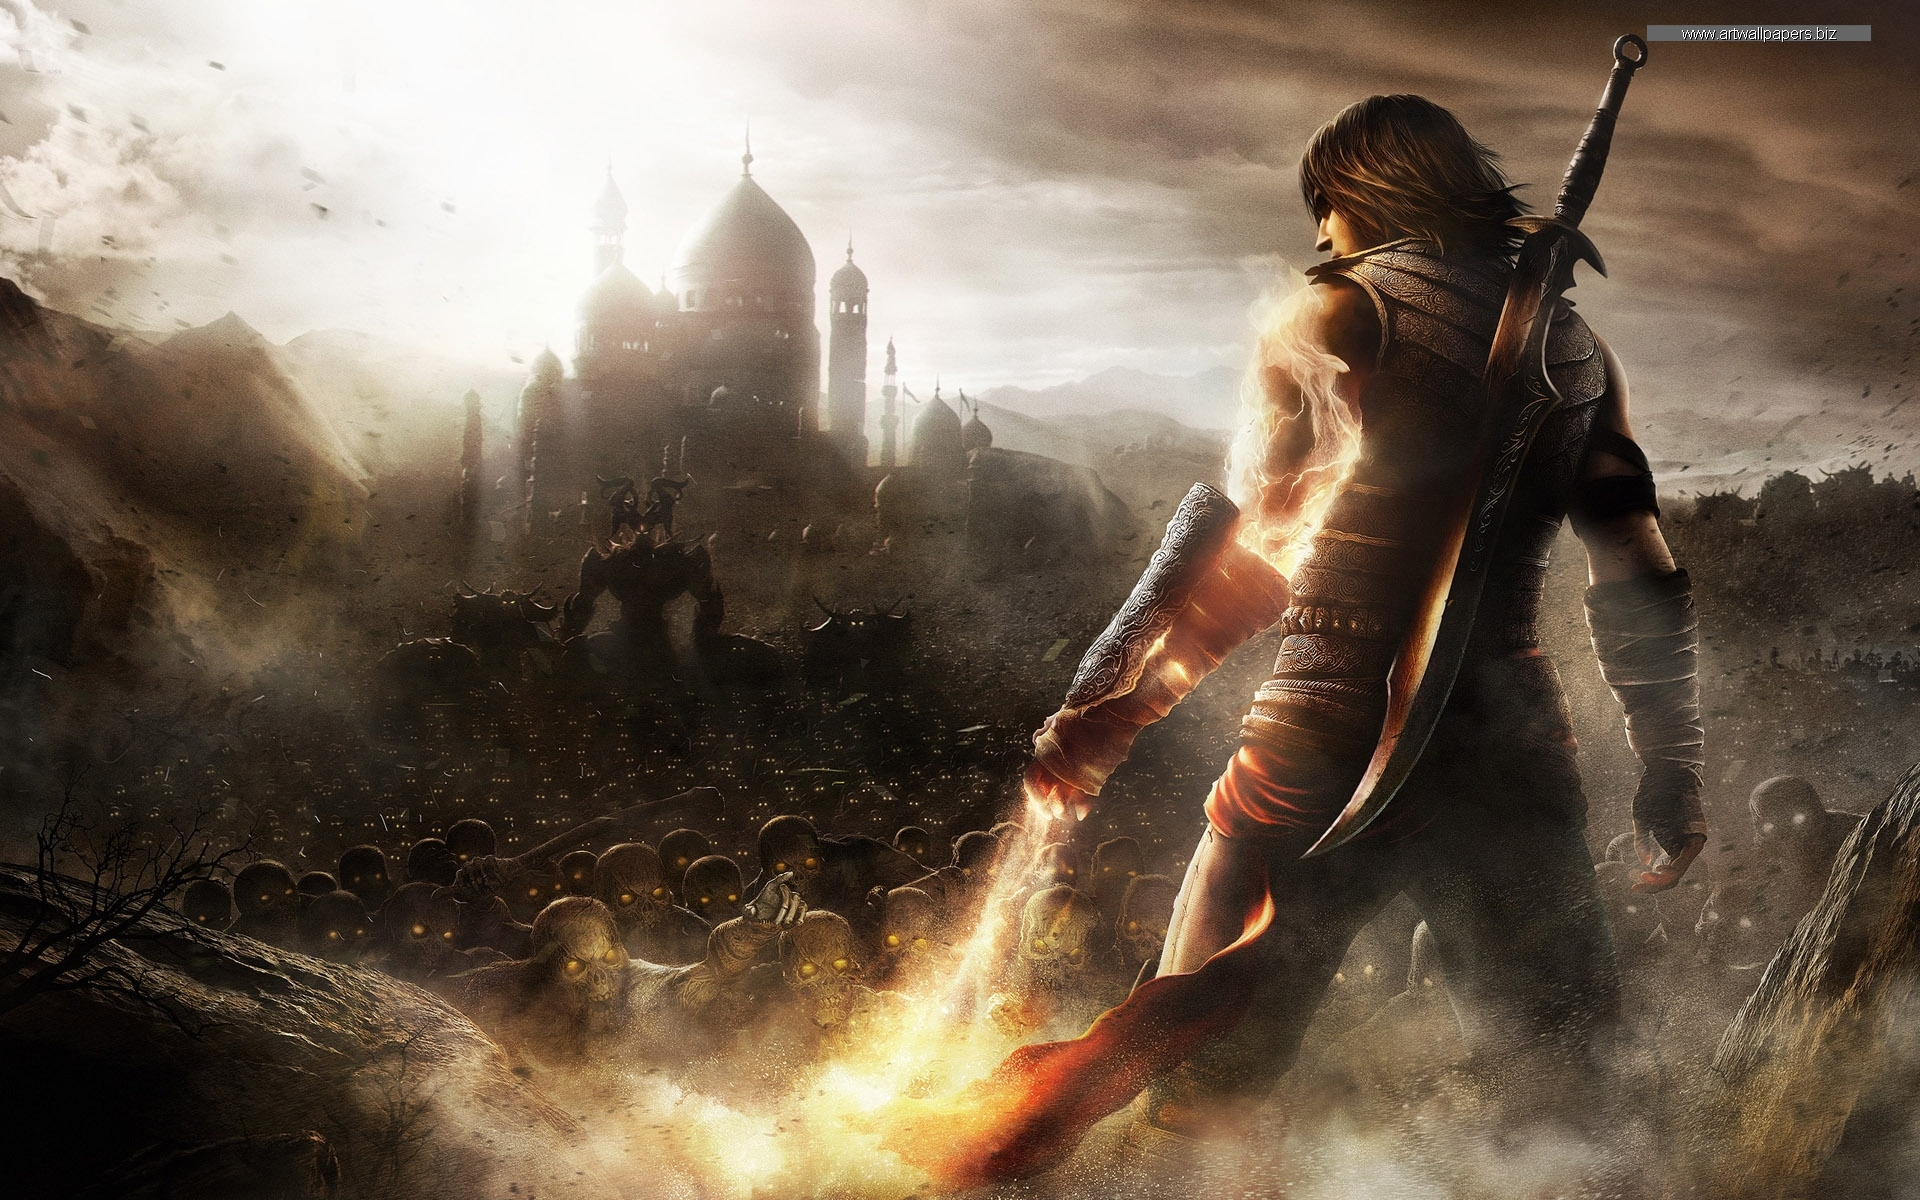 Wallpapers HD Games